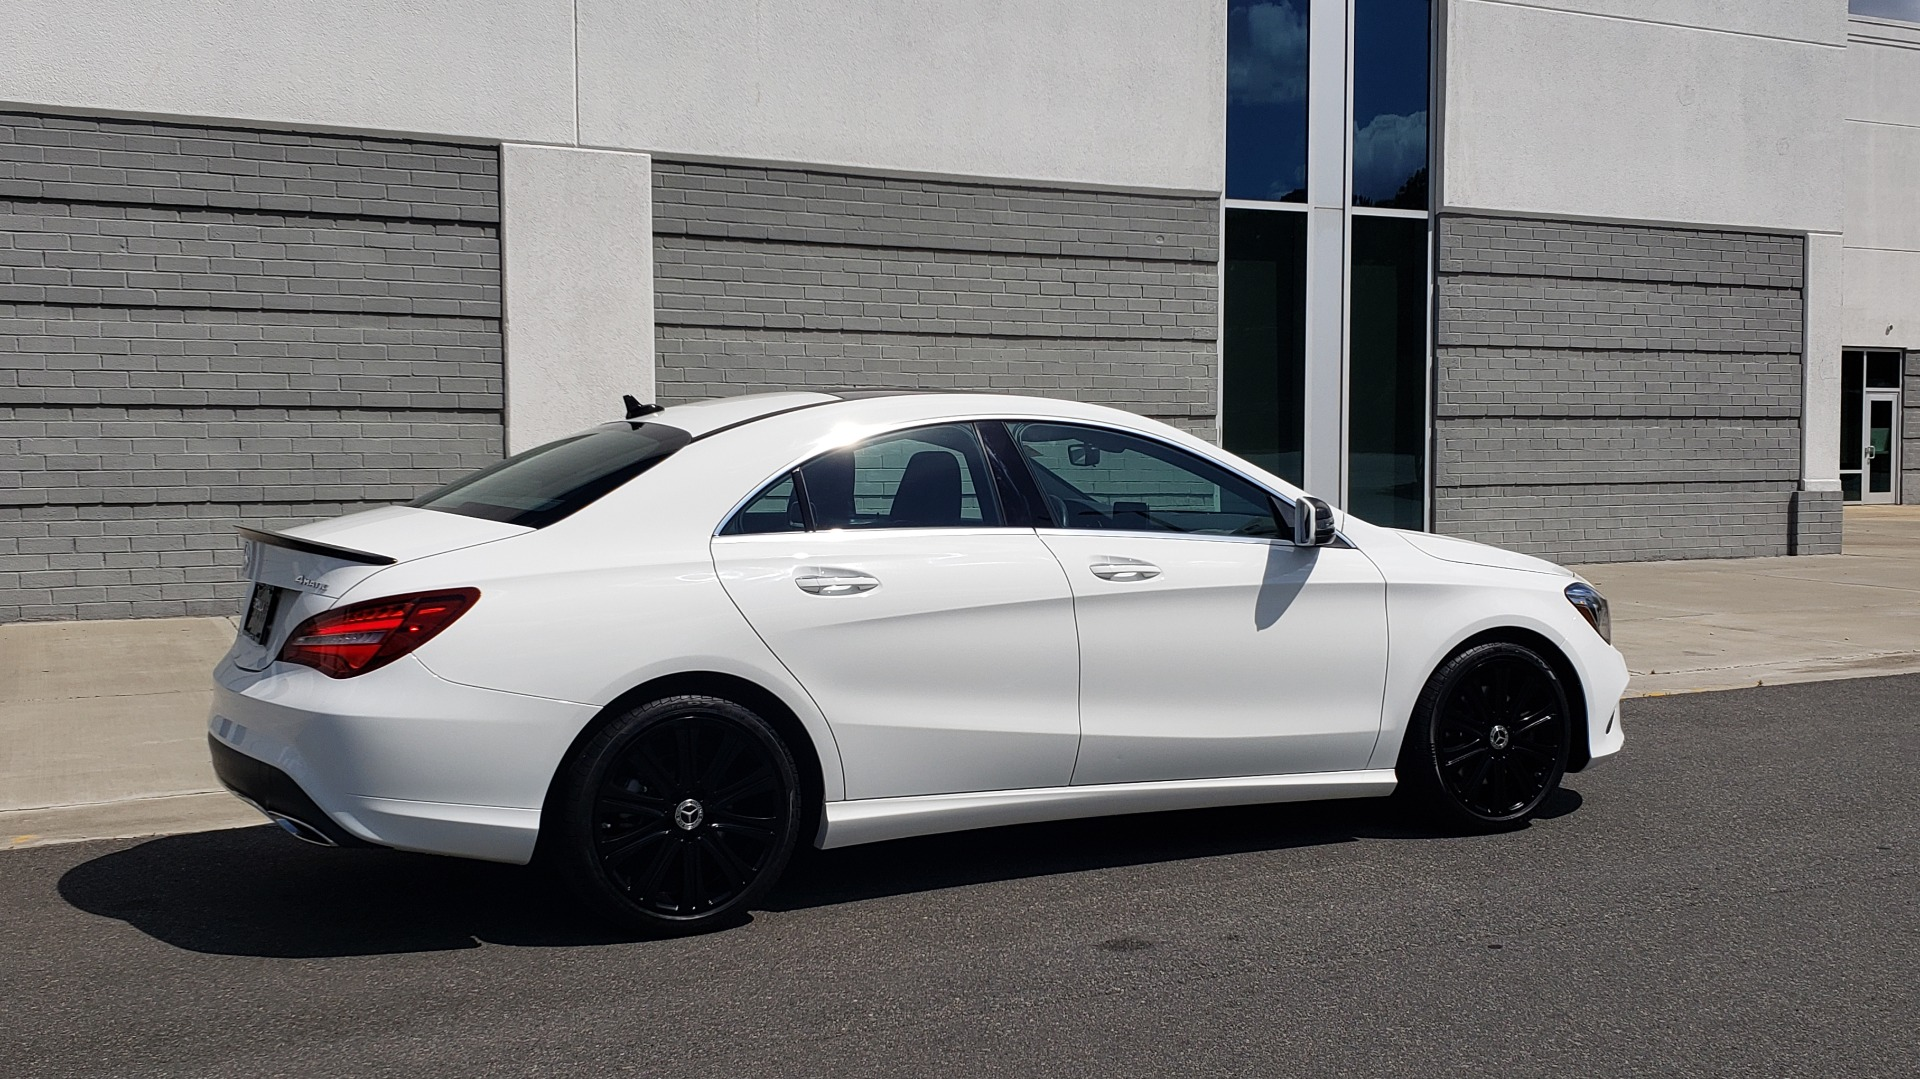 Used 2018 Mercedes-Benz CLA 250 4MATIC COUPE / PREMIUM / PANO-ROOF / APPLE / REARVIEW for sale Sold at Formula Imports in Charlotte NC 28227 8